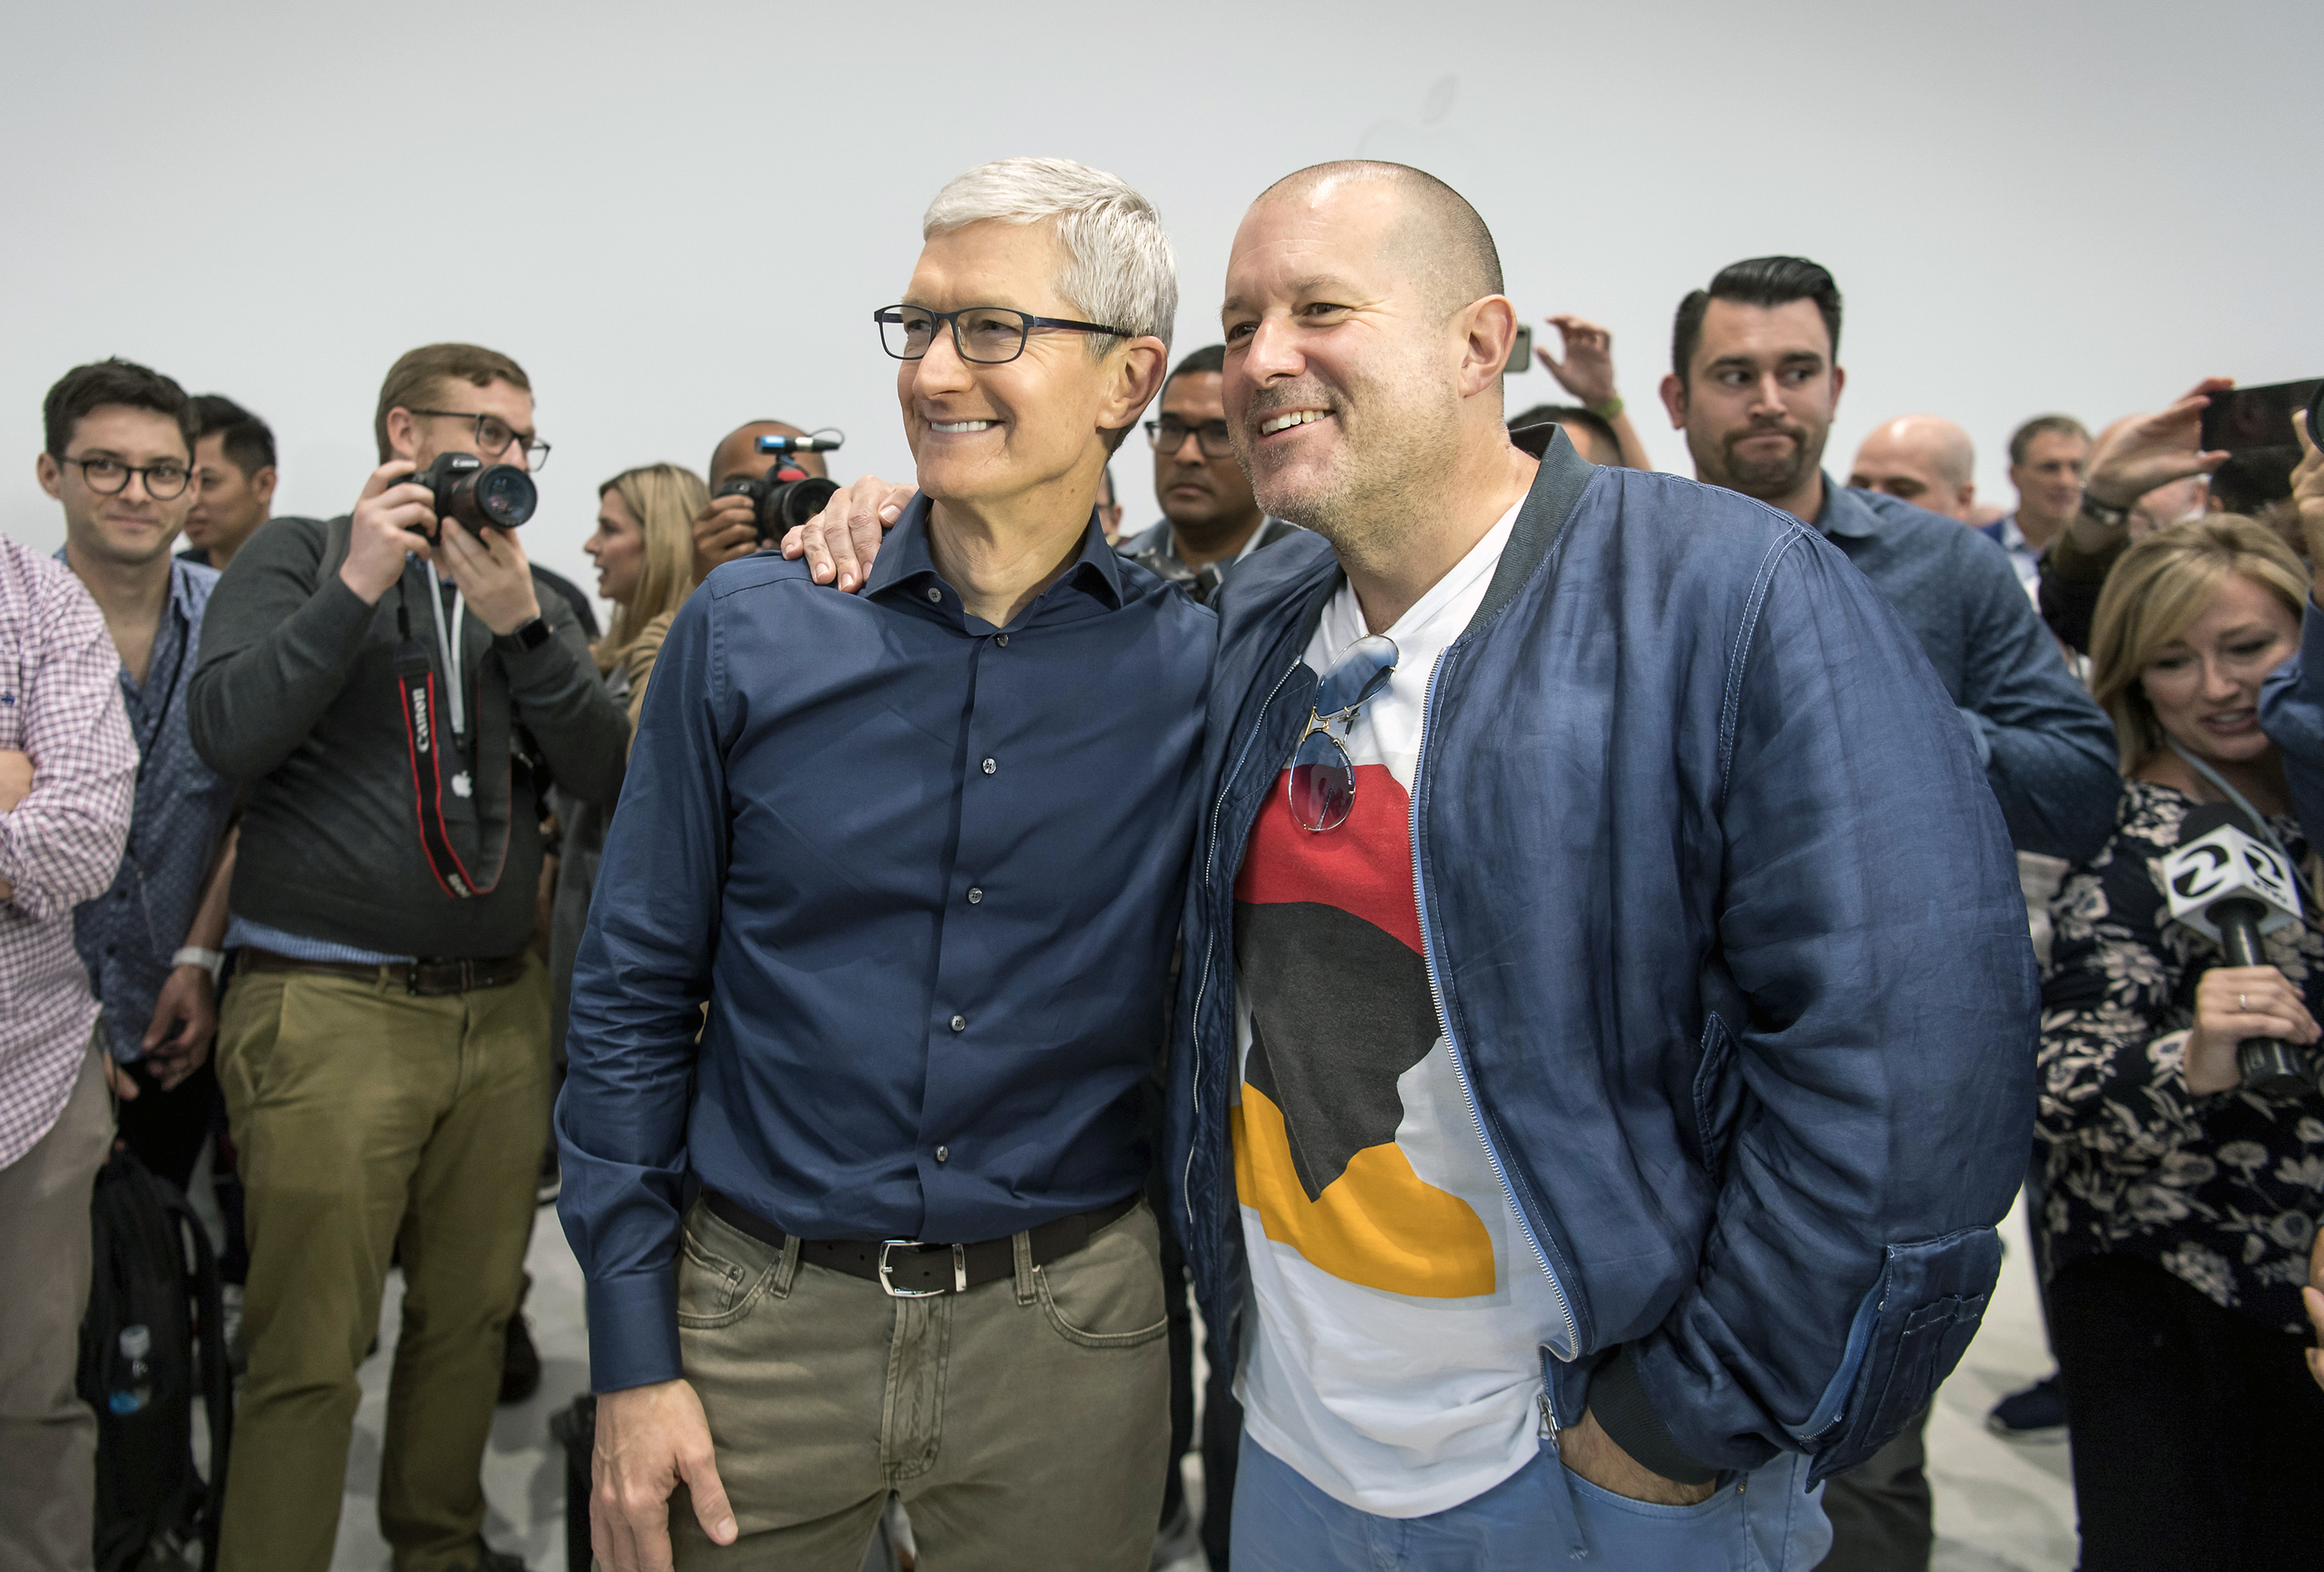 Apple's Chief designer, Jony Ive, is leaving to form an independent company